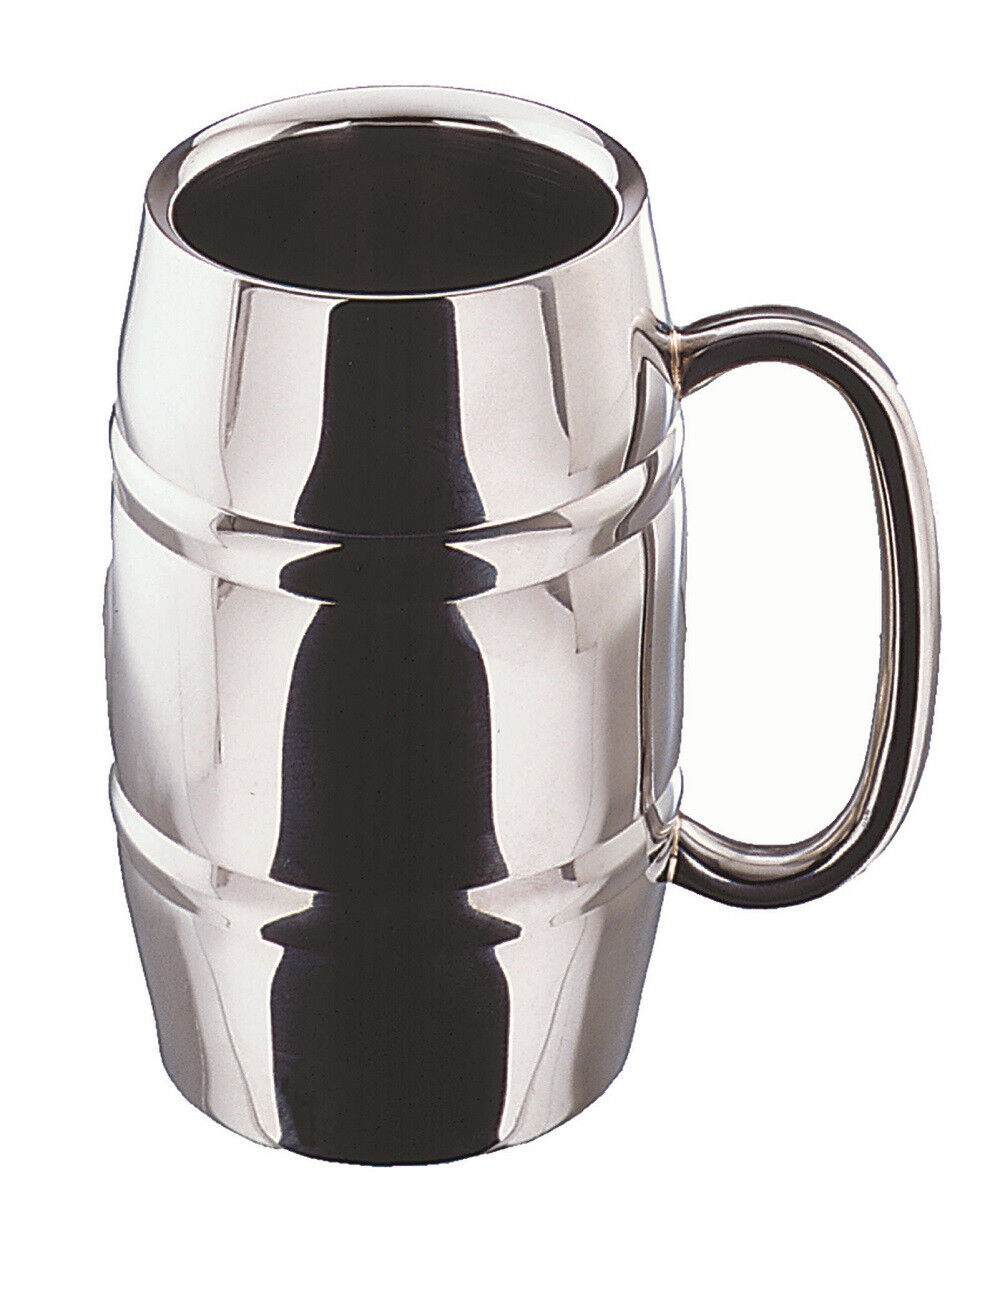 Beer Stein Polished a2-asis 304